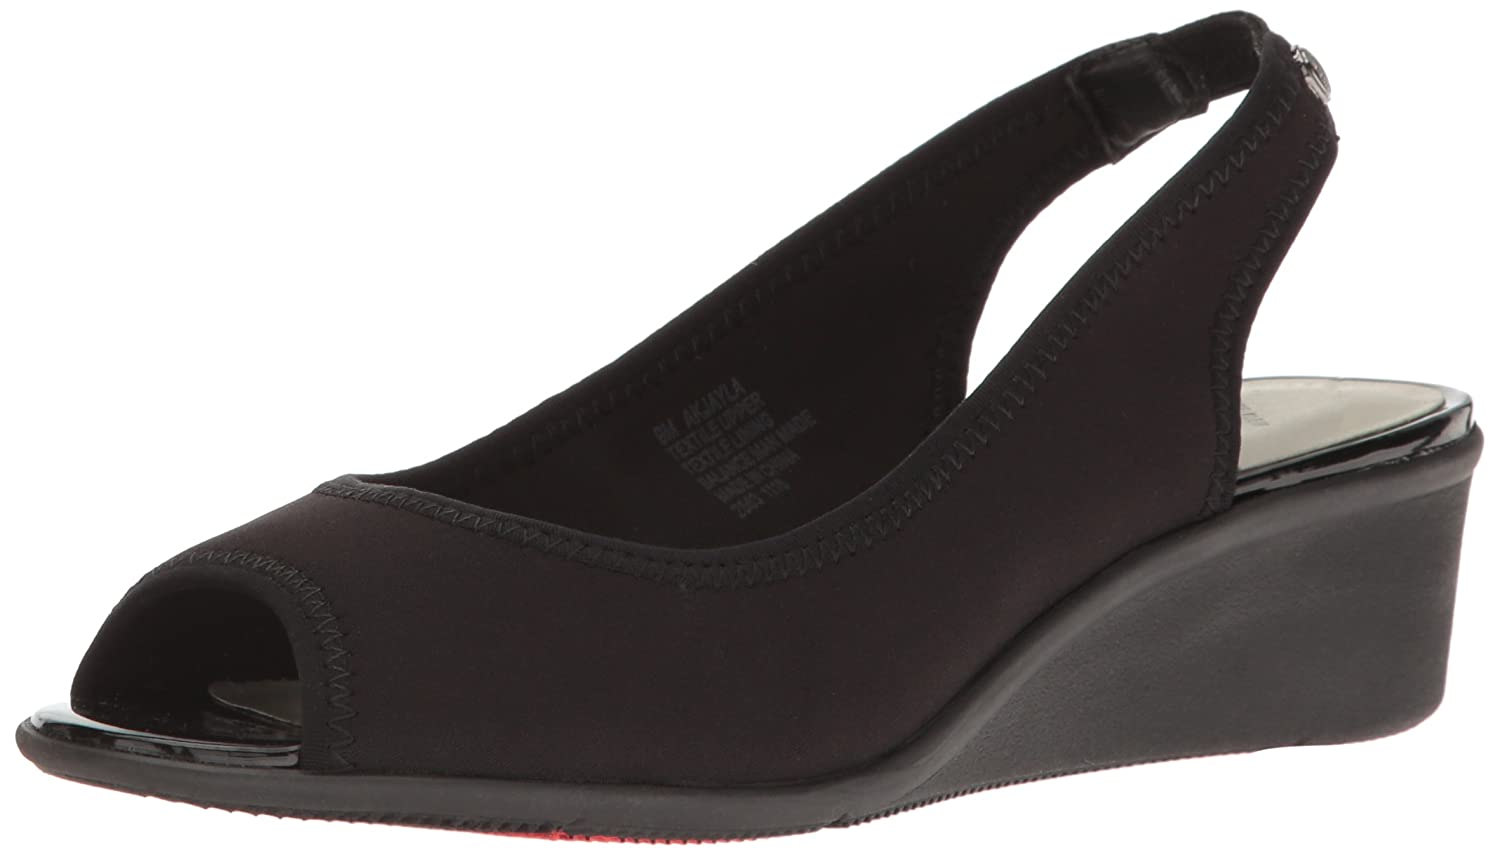 Anne Klein AK Sport Women's Jayla Fabric Wedge Pump B005ASC7KS 5.5 B(M) US|Black